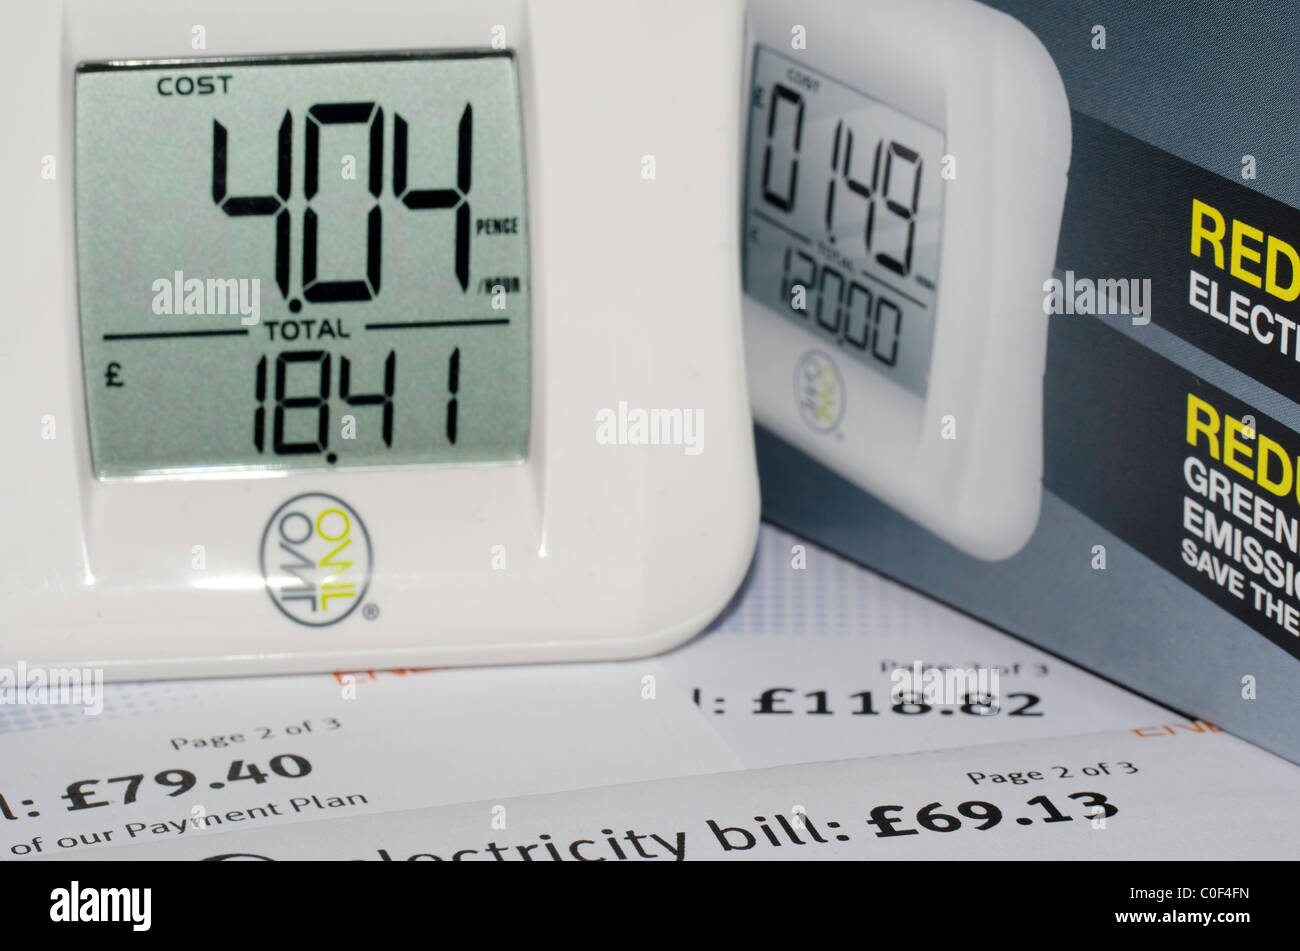 Owl electricity usage monitor, energy awareness Stock Photo